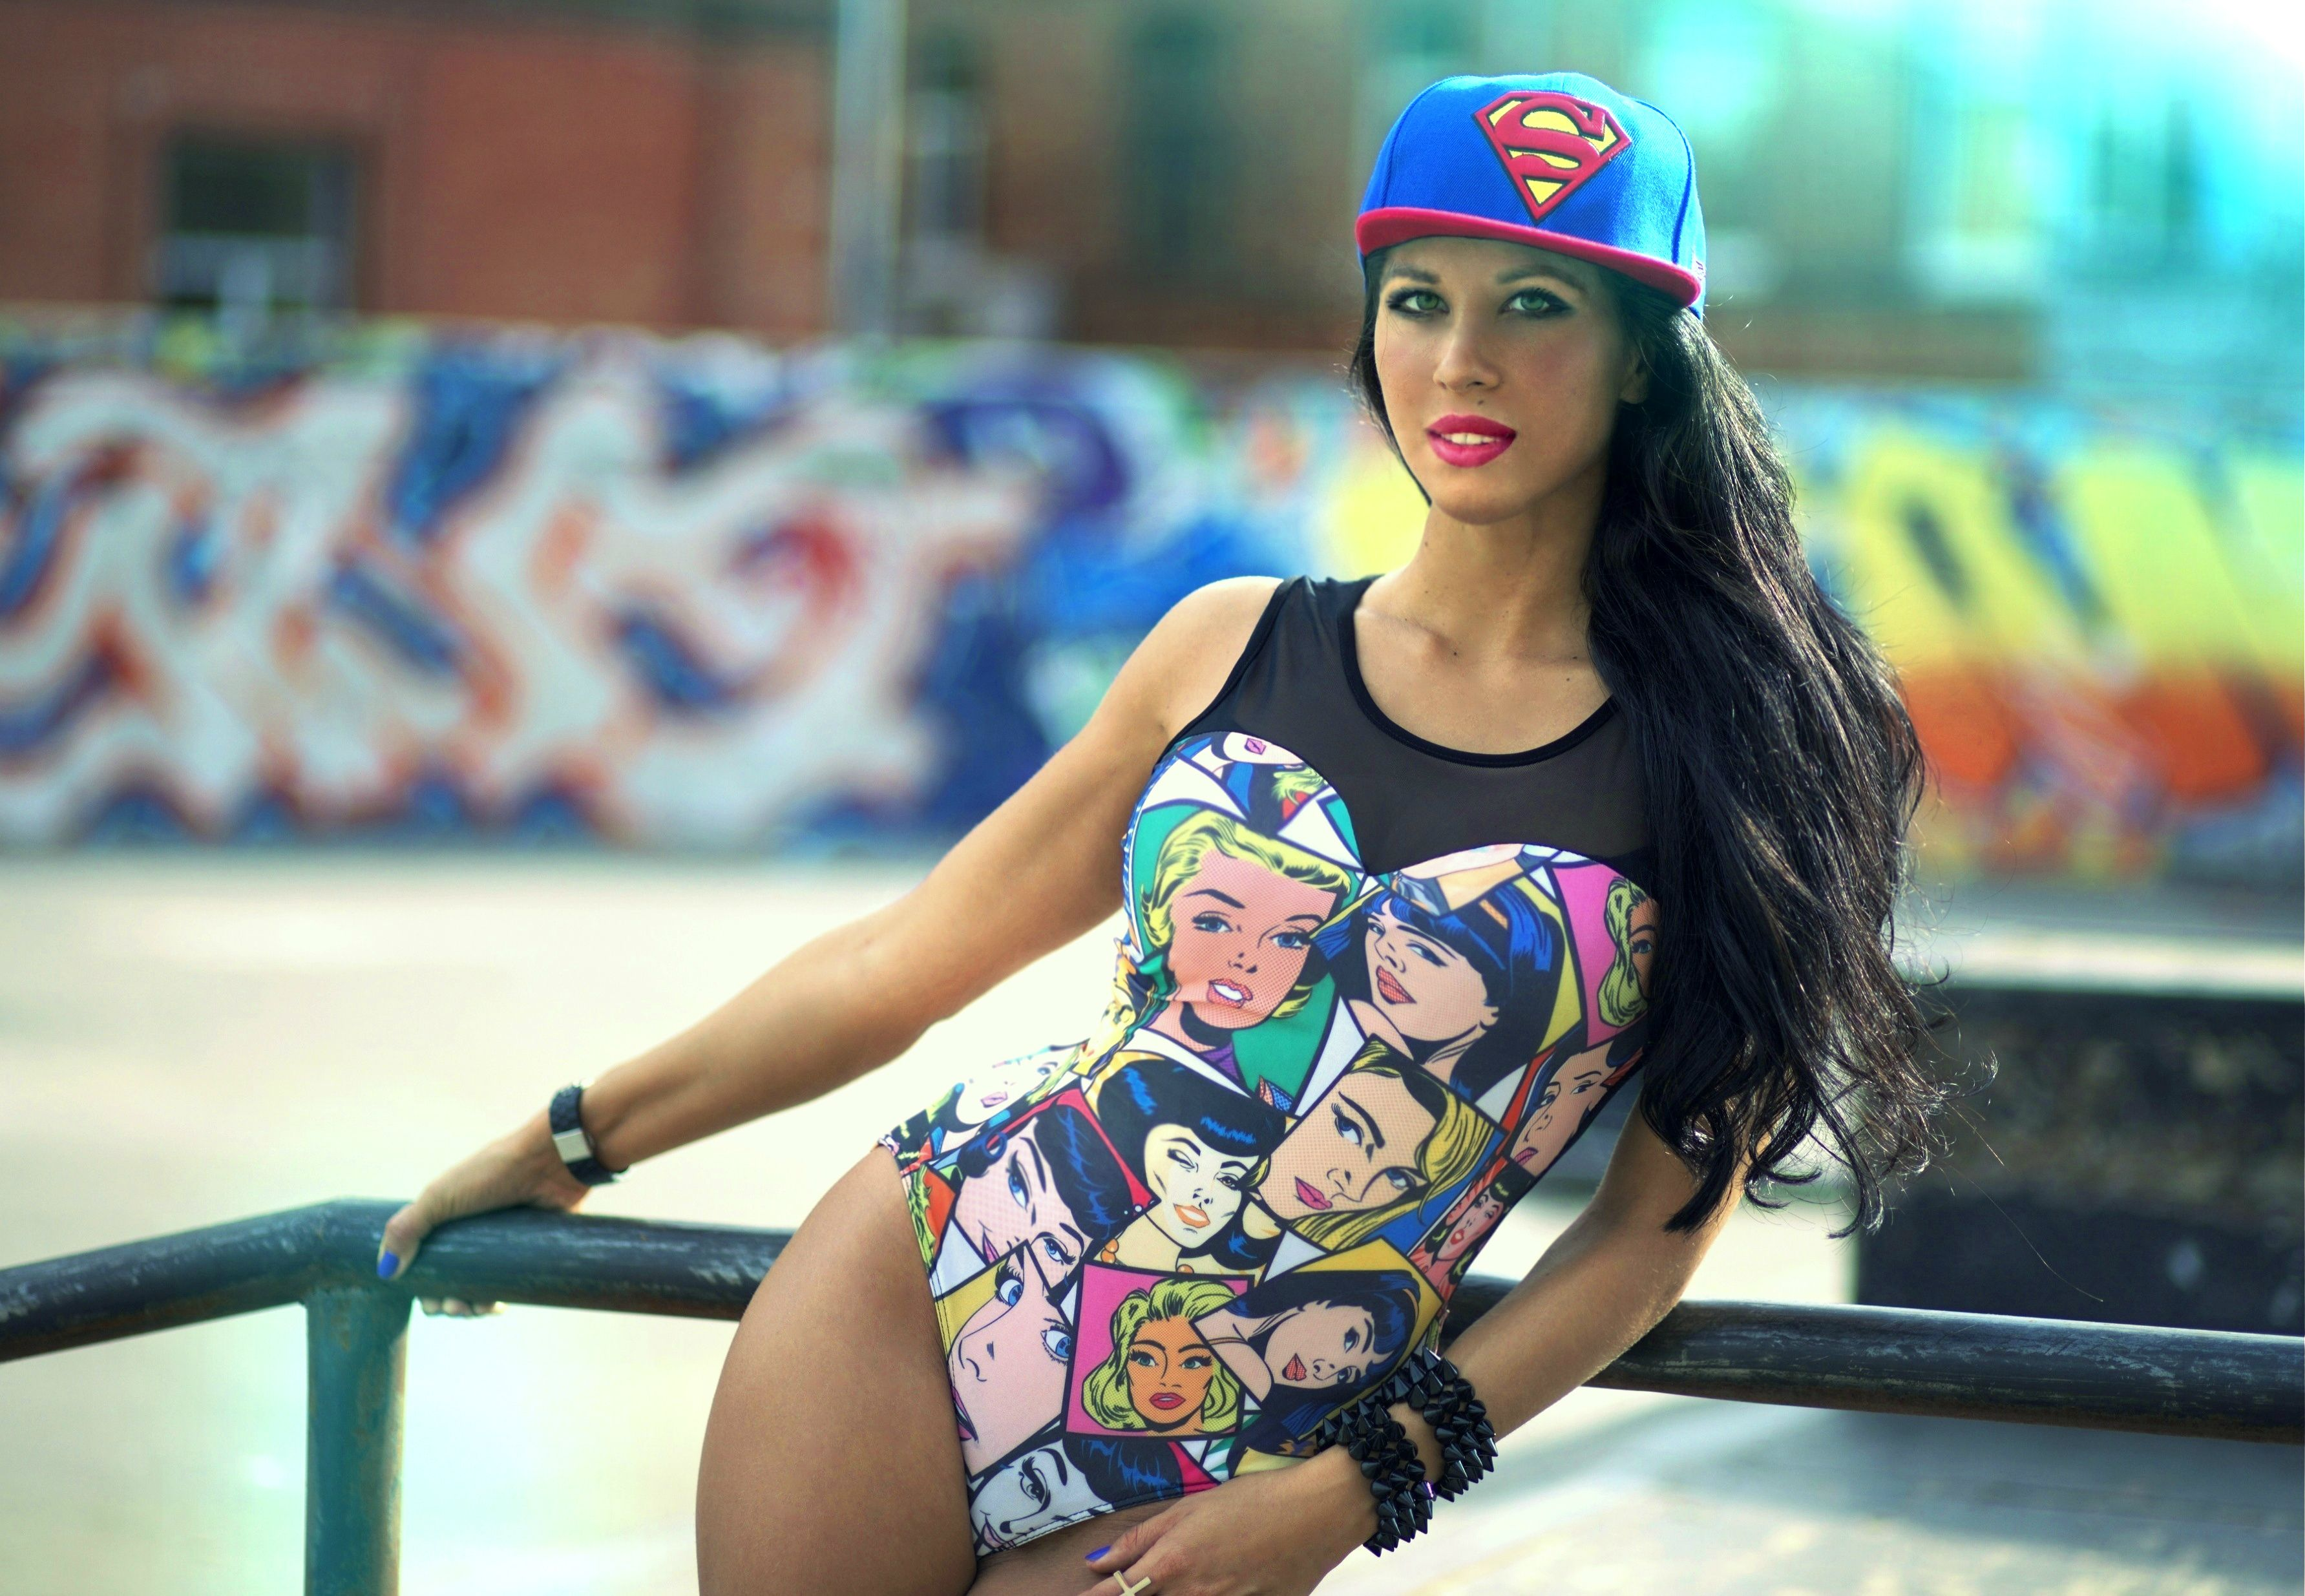 3567x2470 The girl wearing a cap superman, swag wallpapers and images ...